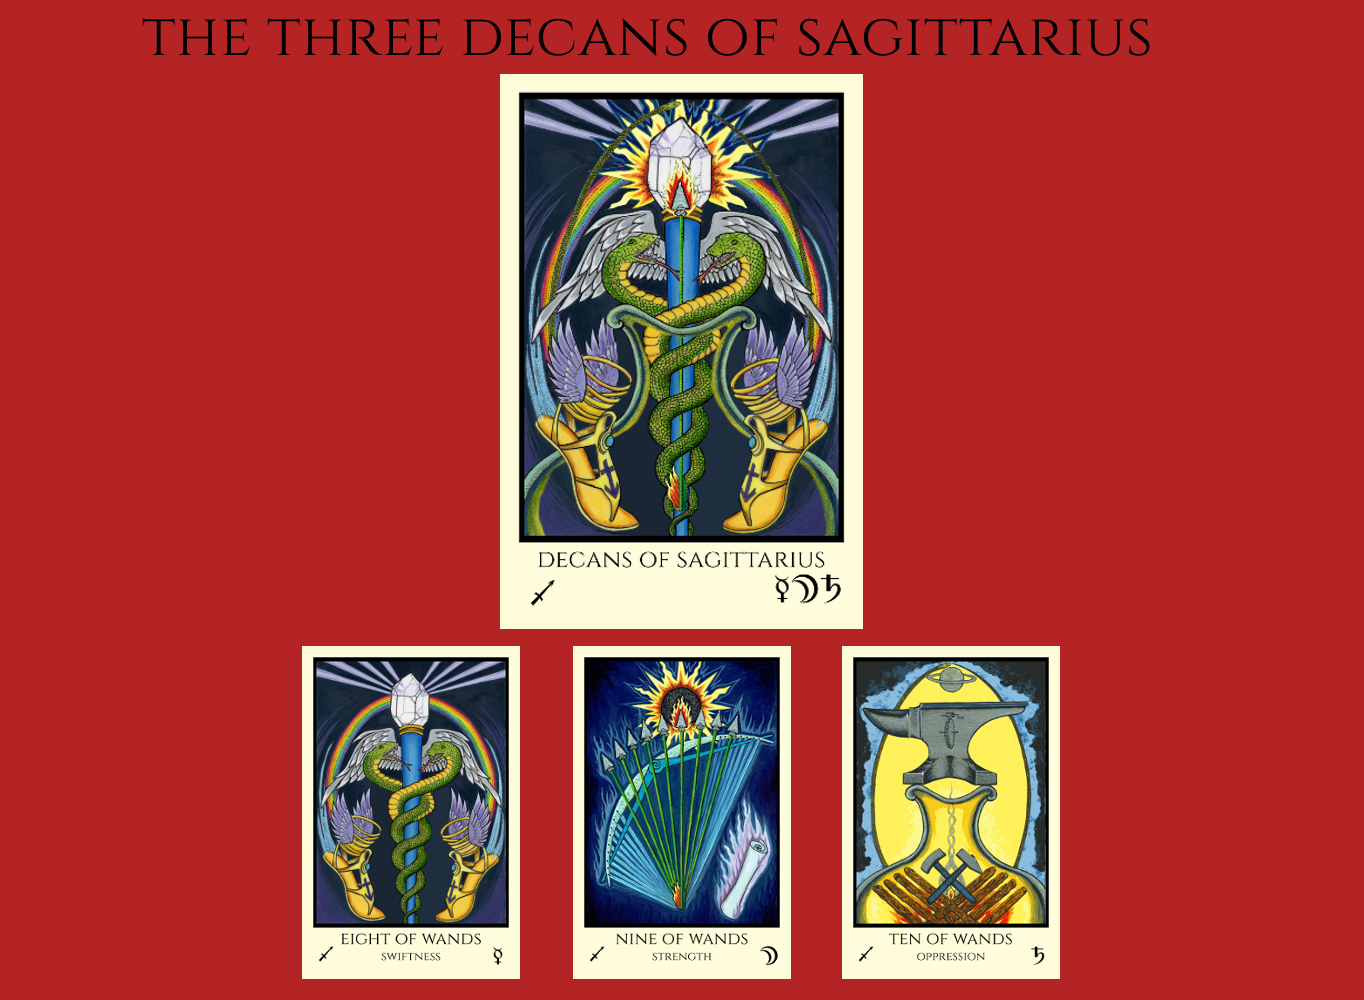 The three decans of Sagittarius